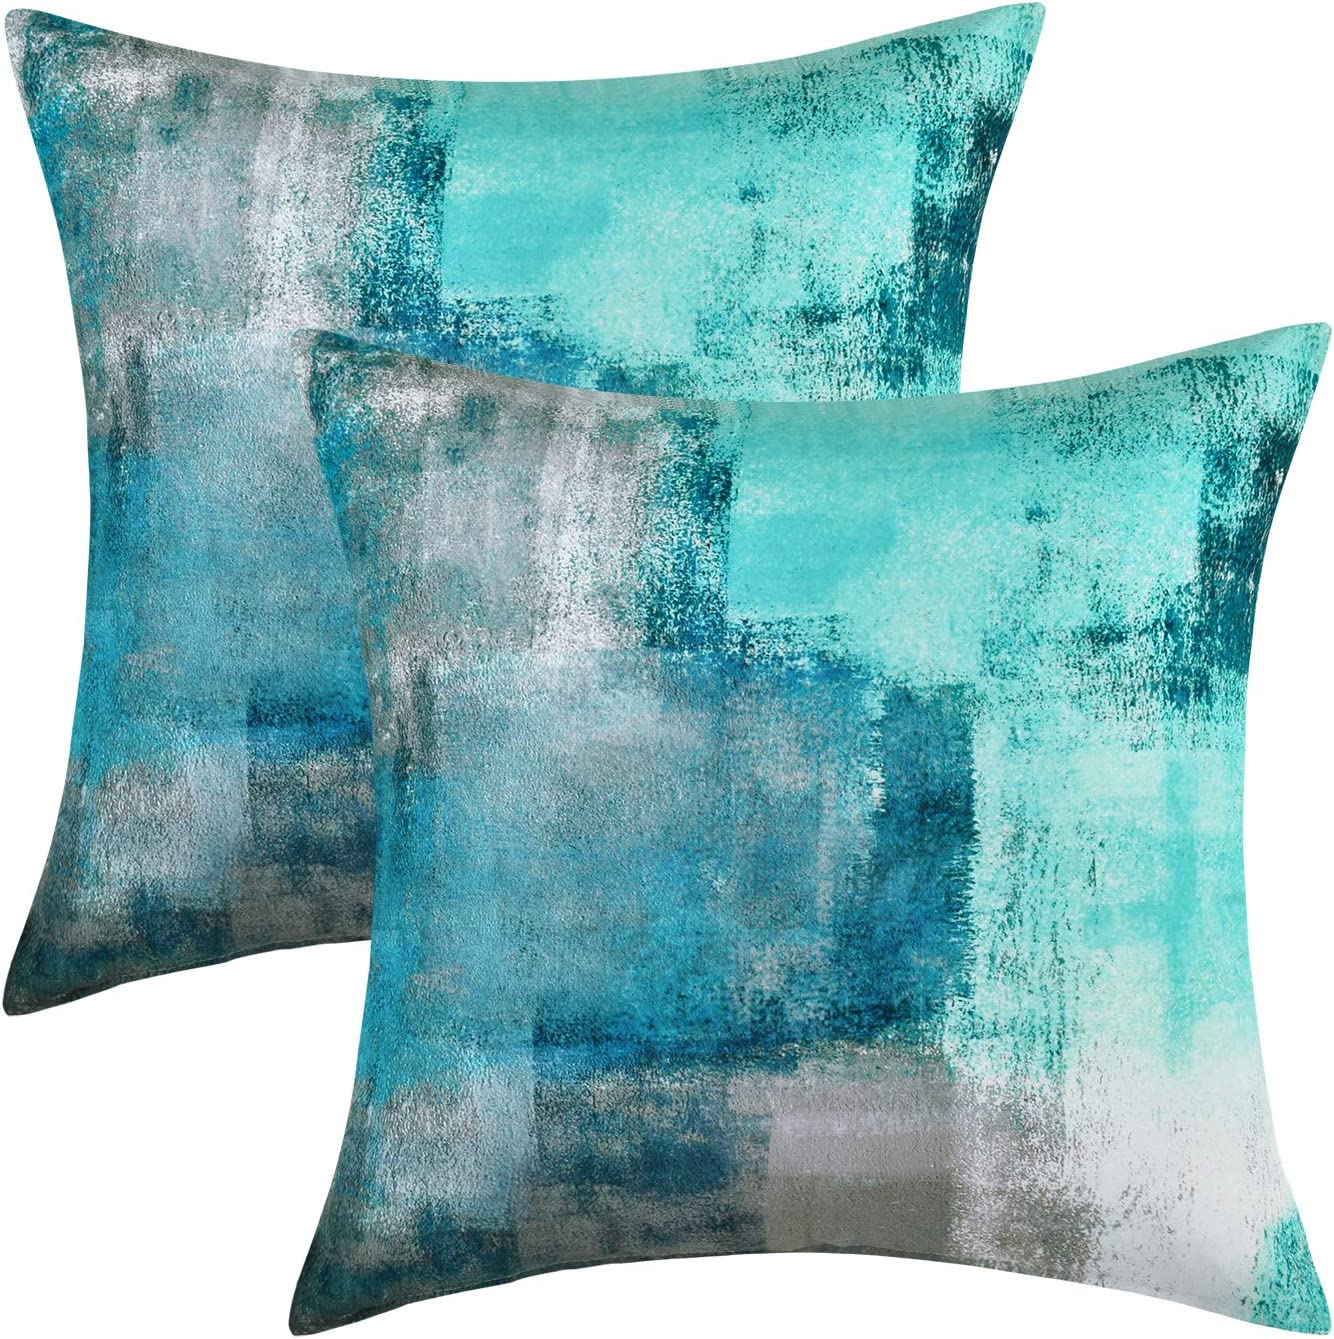 Yastouay 2 Pack Teal and Grey Decorative Throw Pillows Covers 18 x 18 inch Turquoise Pillow Cover Modern Contemporary Pillow Cover Home Decor Cushion Cover for Sofa Bed Living Room Bedroom